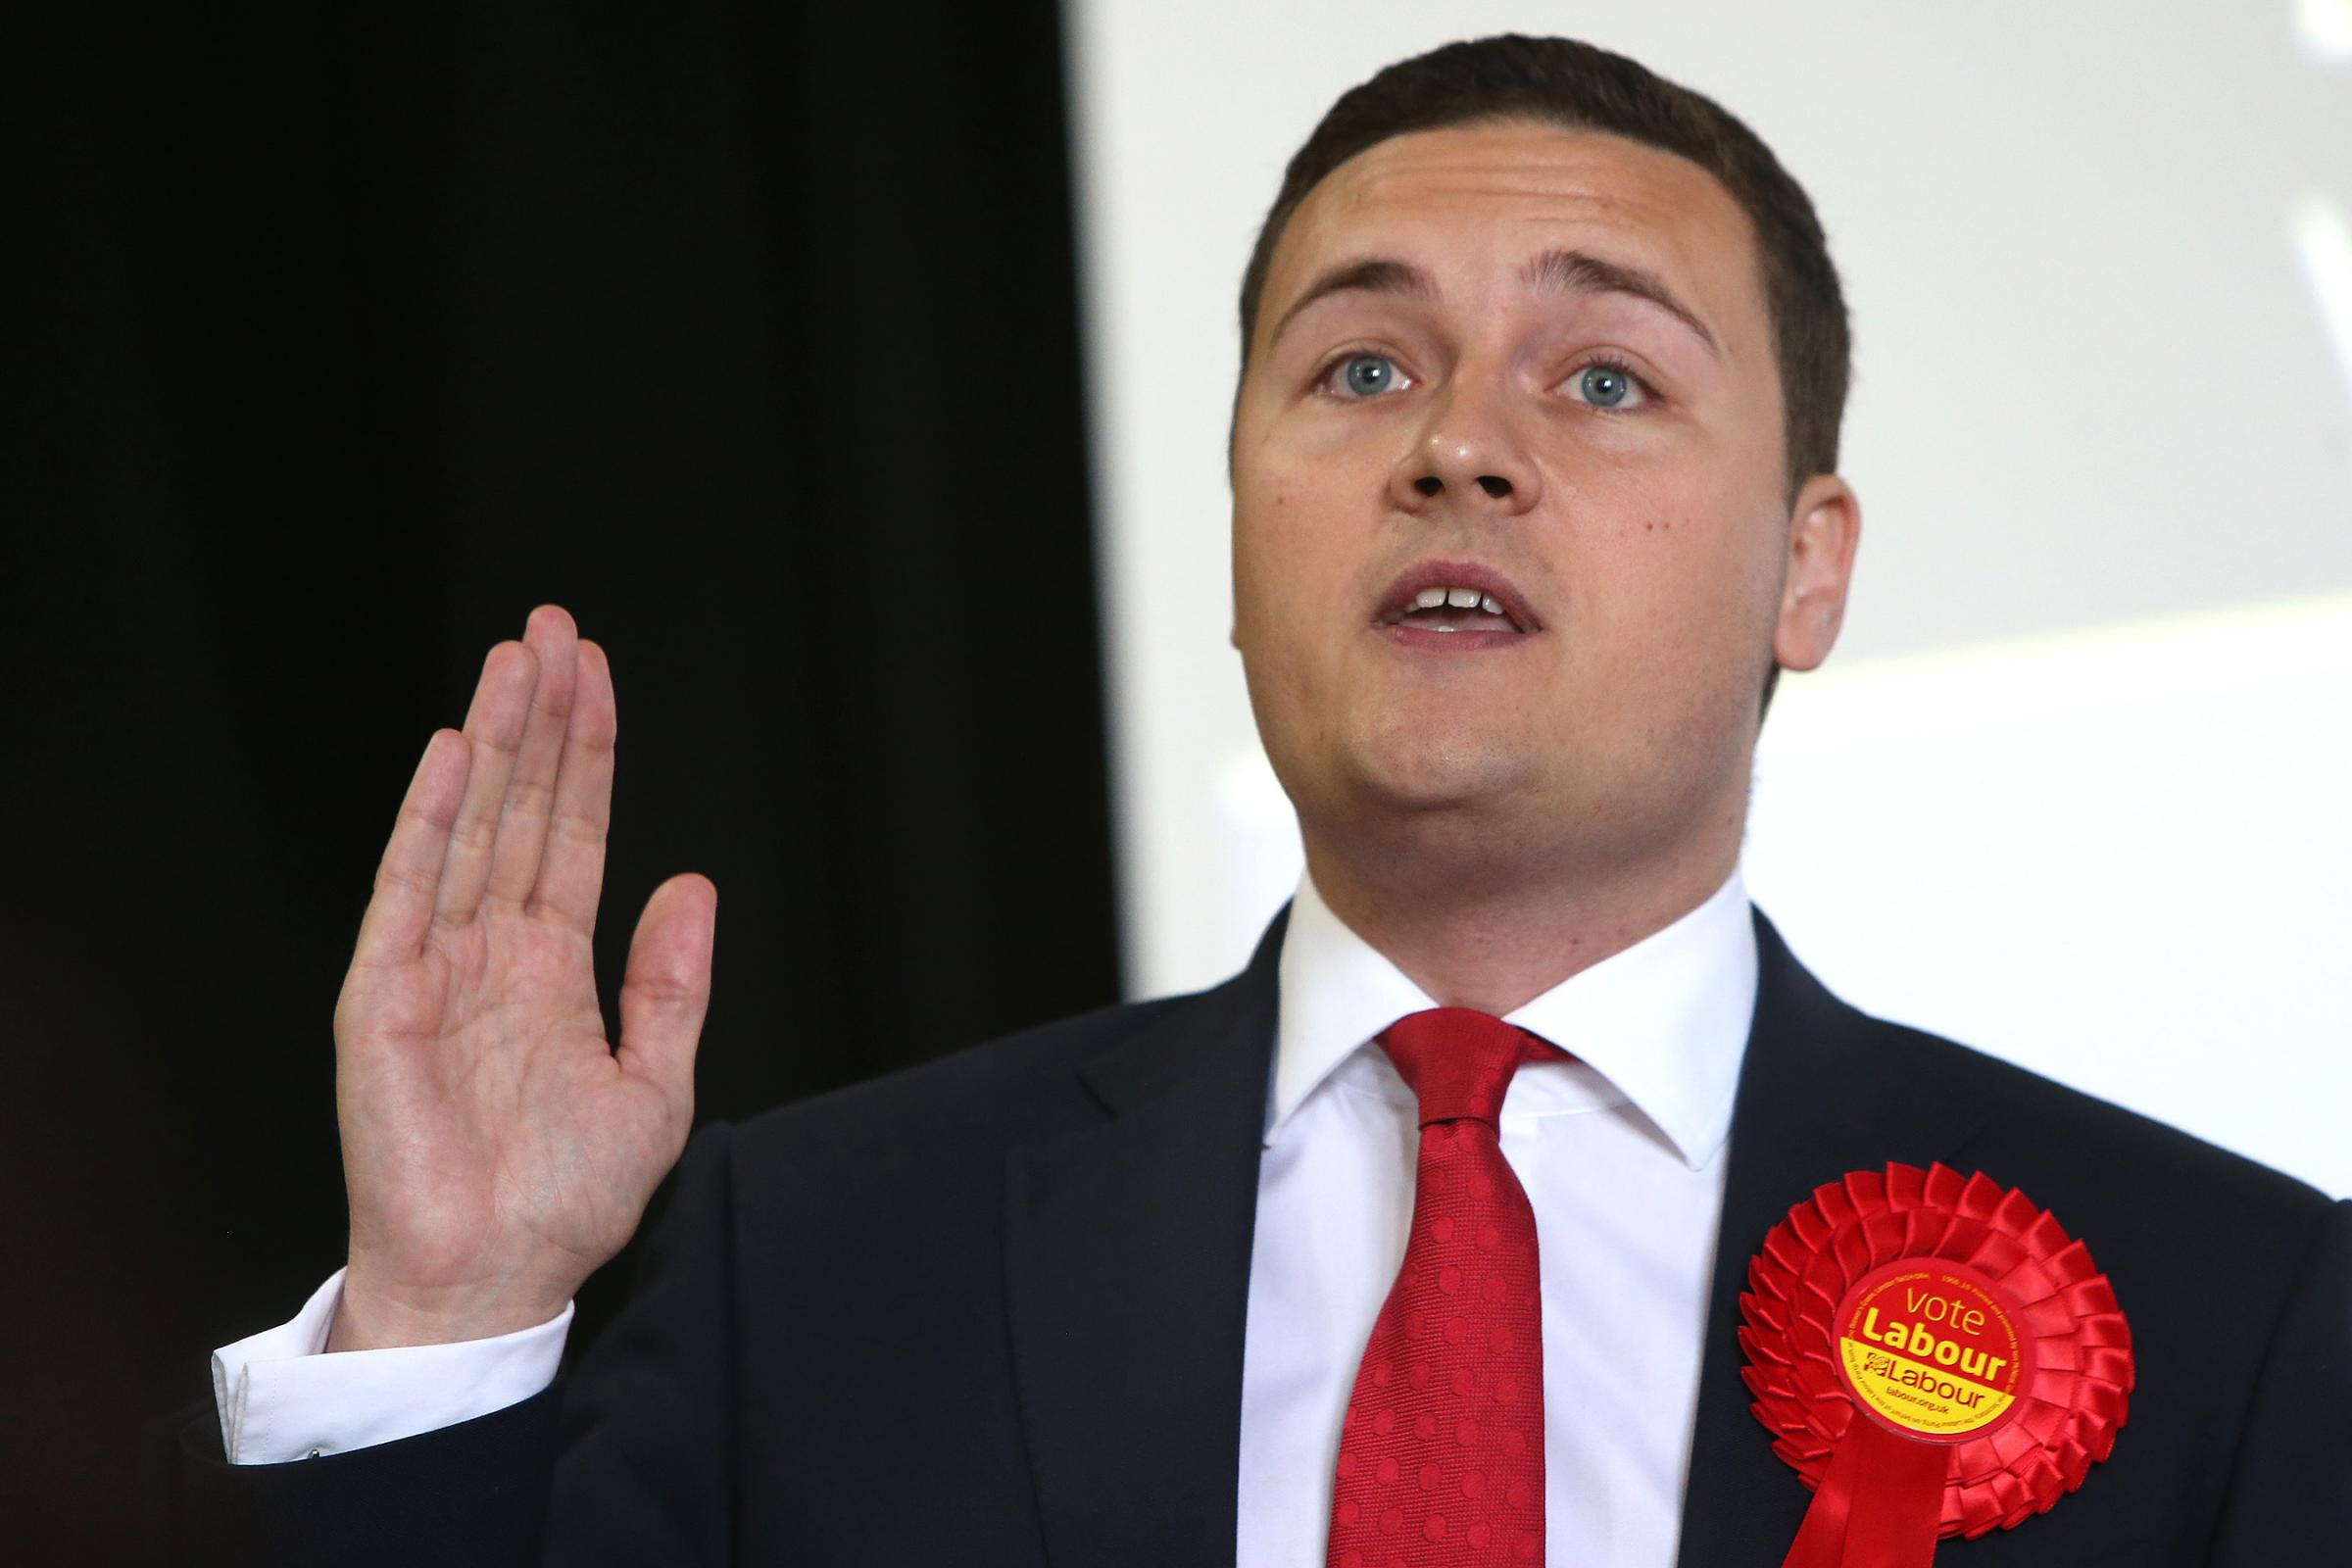 Wes Streeting will speak at tonight's meeting of the All-Party Parliamentary Group on Briitsh Muslims in Hainault